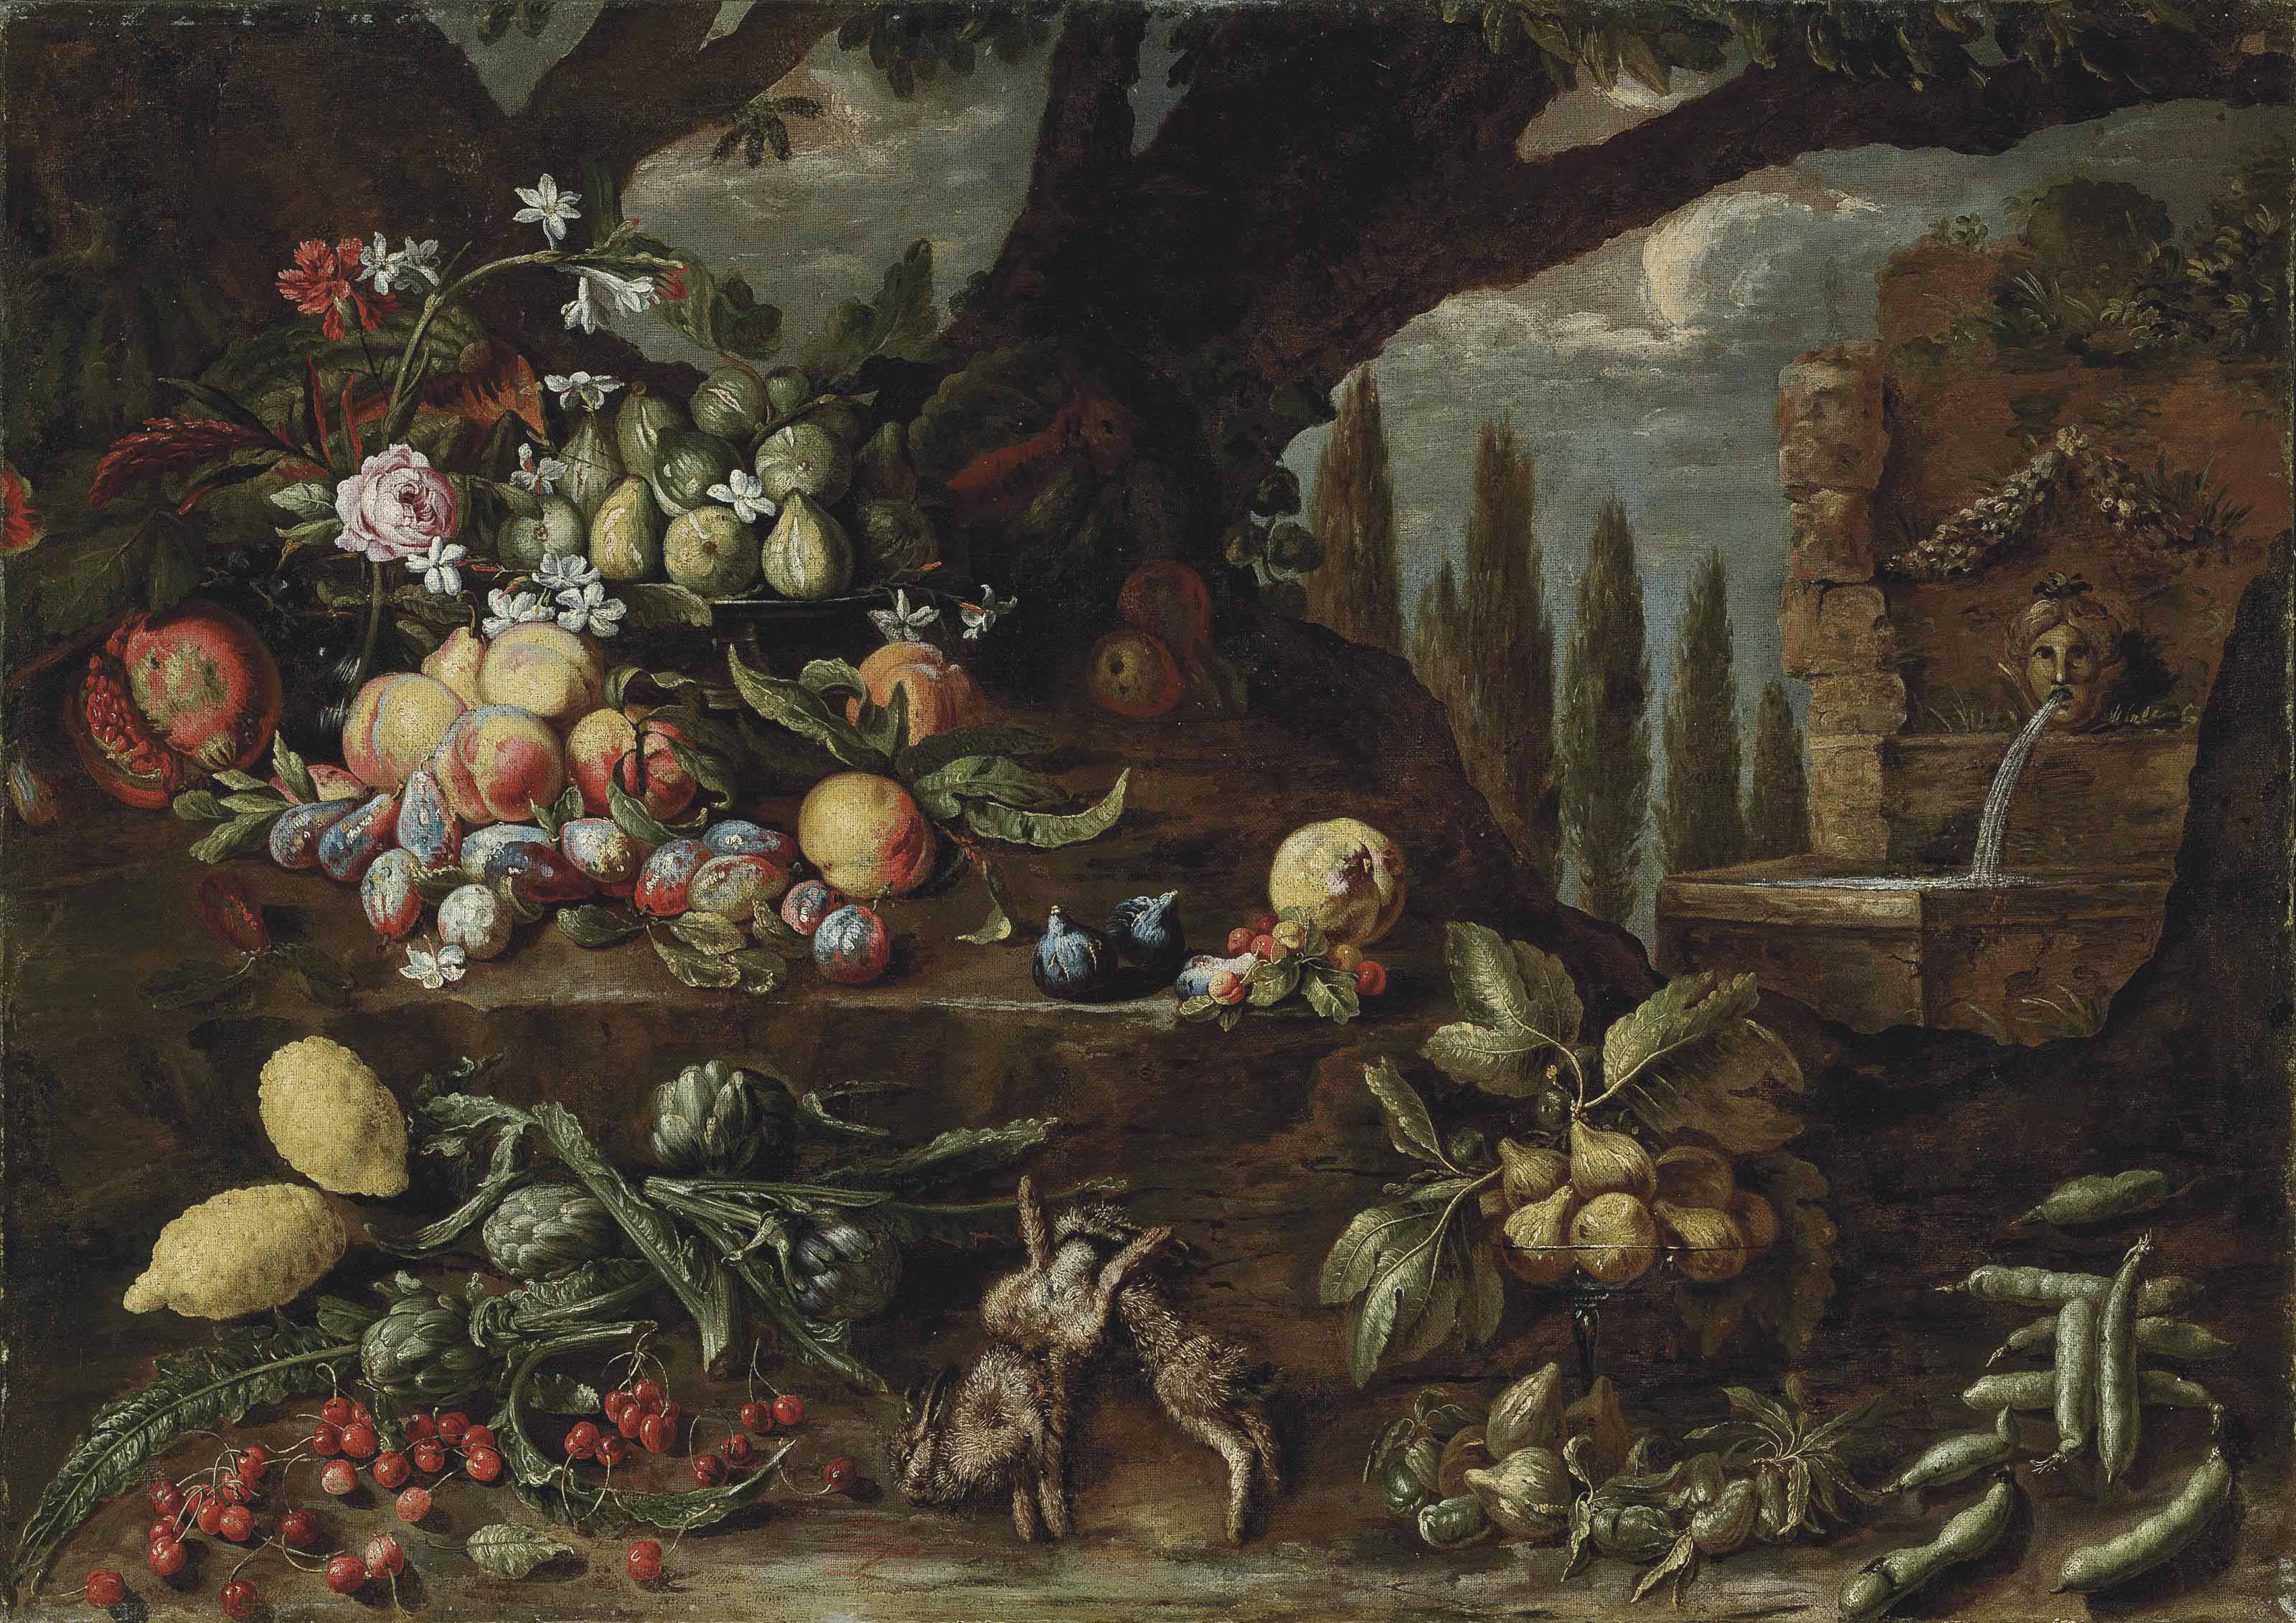 Roses, carnations, lilies, figs, peaches, plums, lemons, artichokes, cherries, other fruit and two dead hares in a wooded clearing, by a fountain